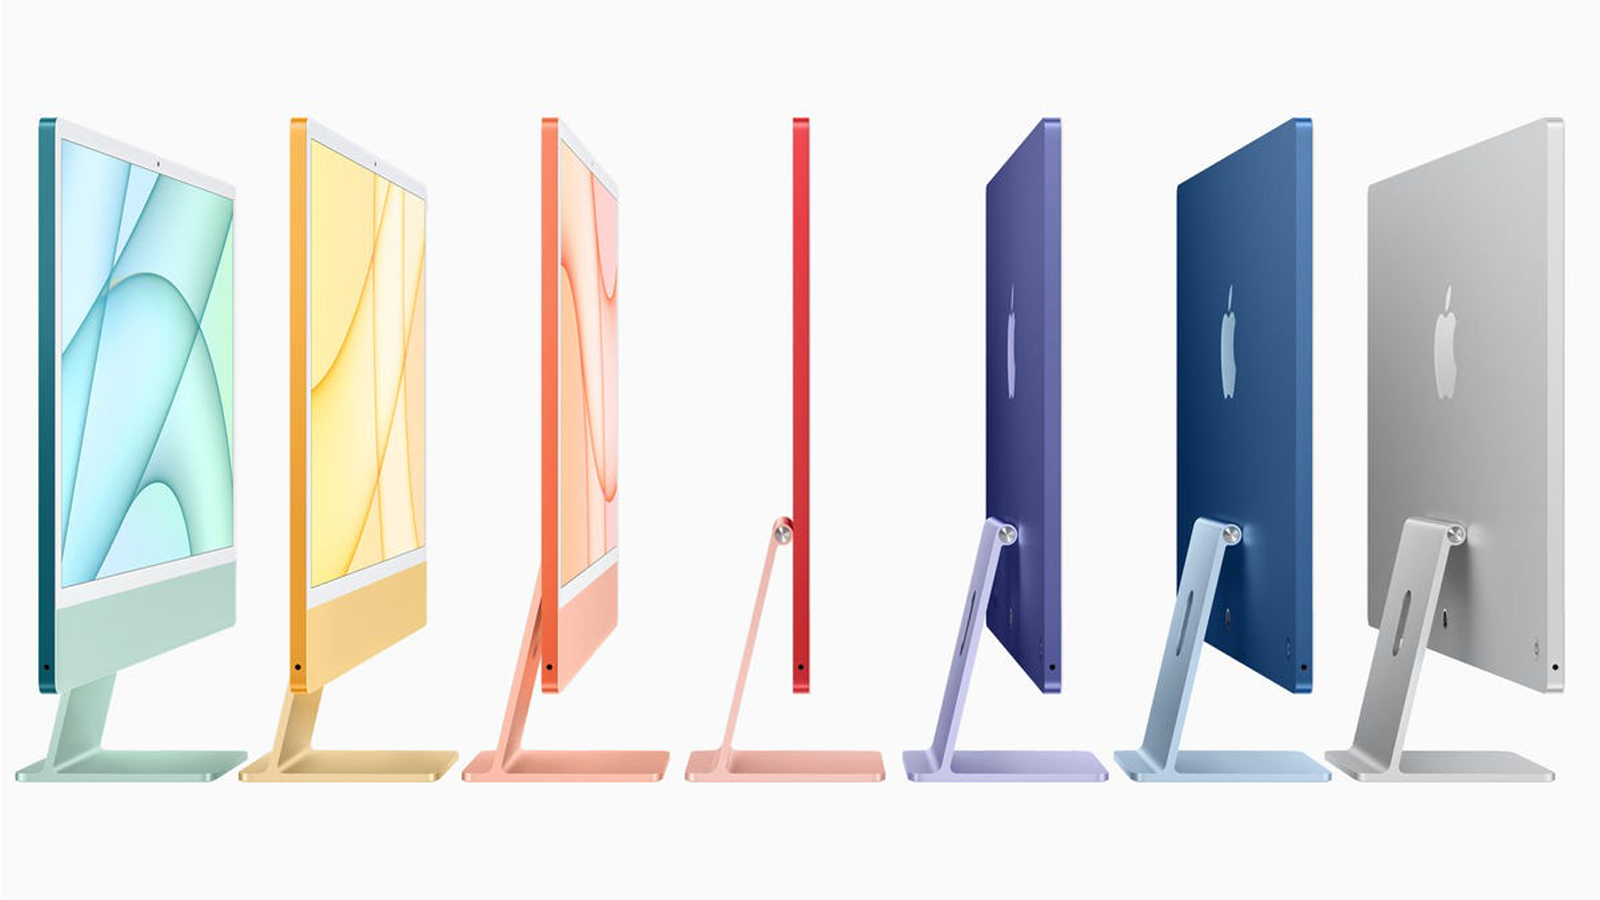 Seven of Apple's new iMacs in different colors lined up and viewed from the side